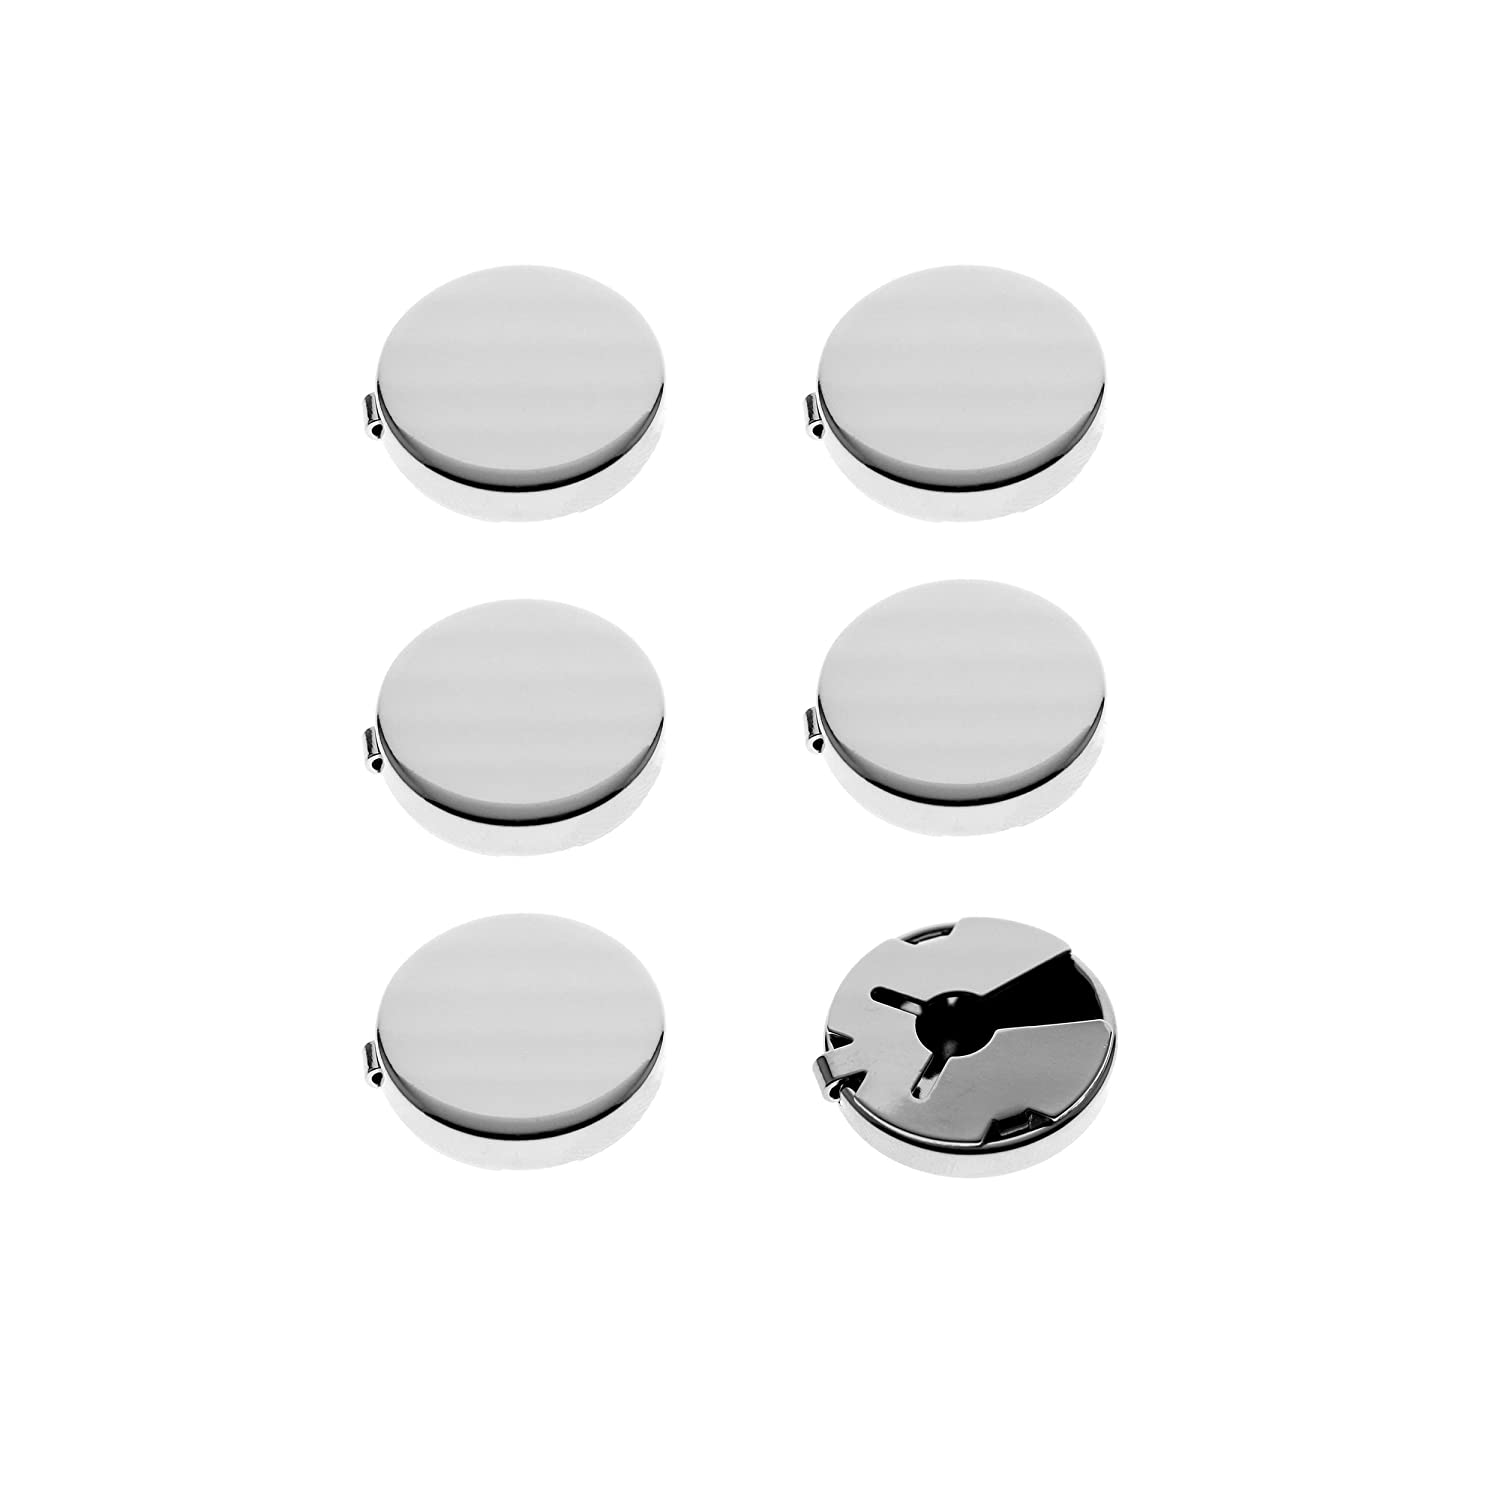 Ms.Iconic Silver,Gun Black Round Cuff Button Cover Cuff Links for Wedding Formal Shirt 6Pcs/set Shine Idea